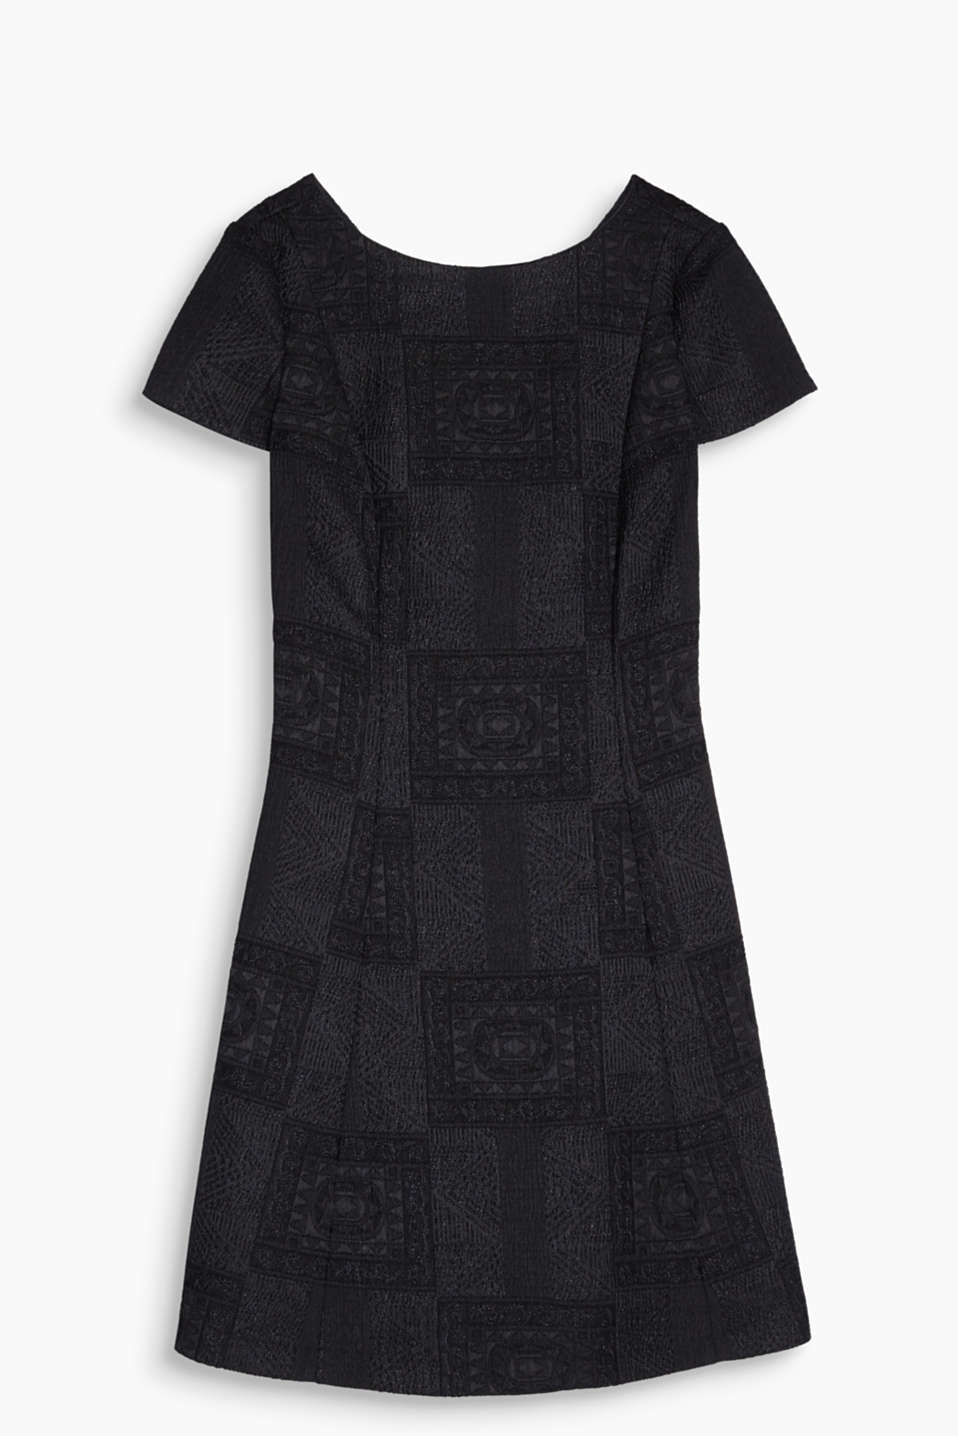 Dream team - jacquard and jersey: fitted dress made of compact stretch jersey with a swirling skirt